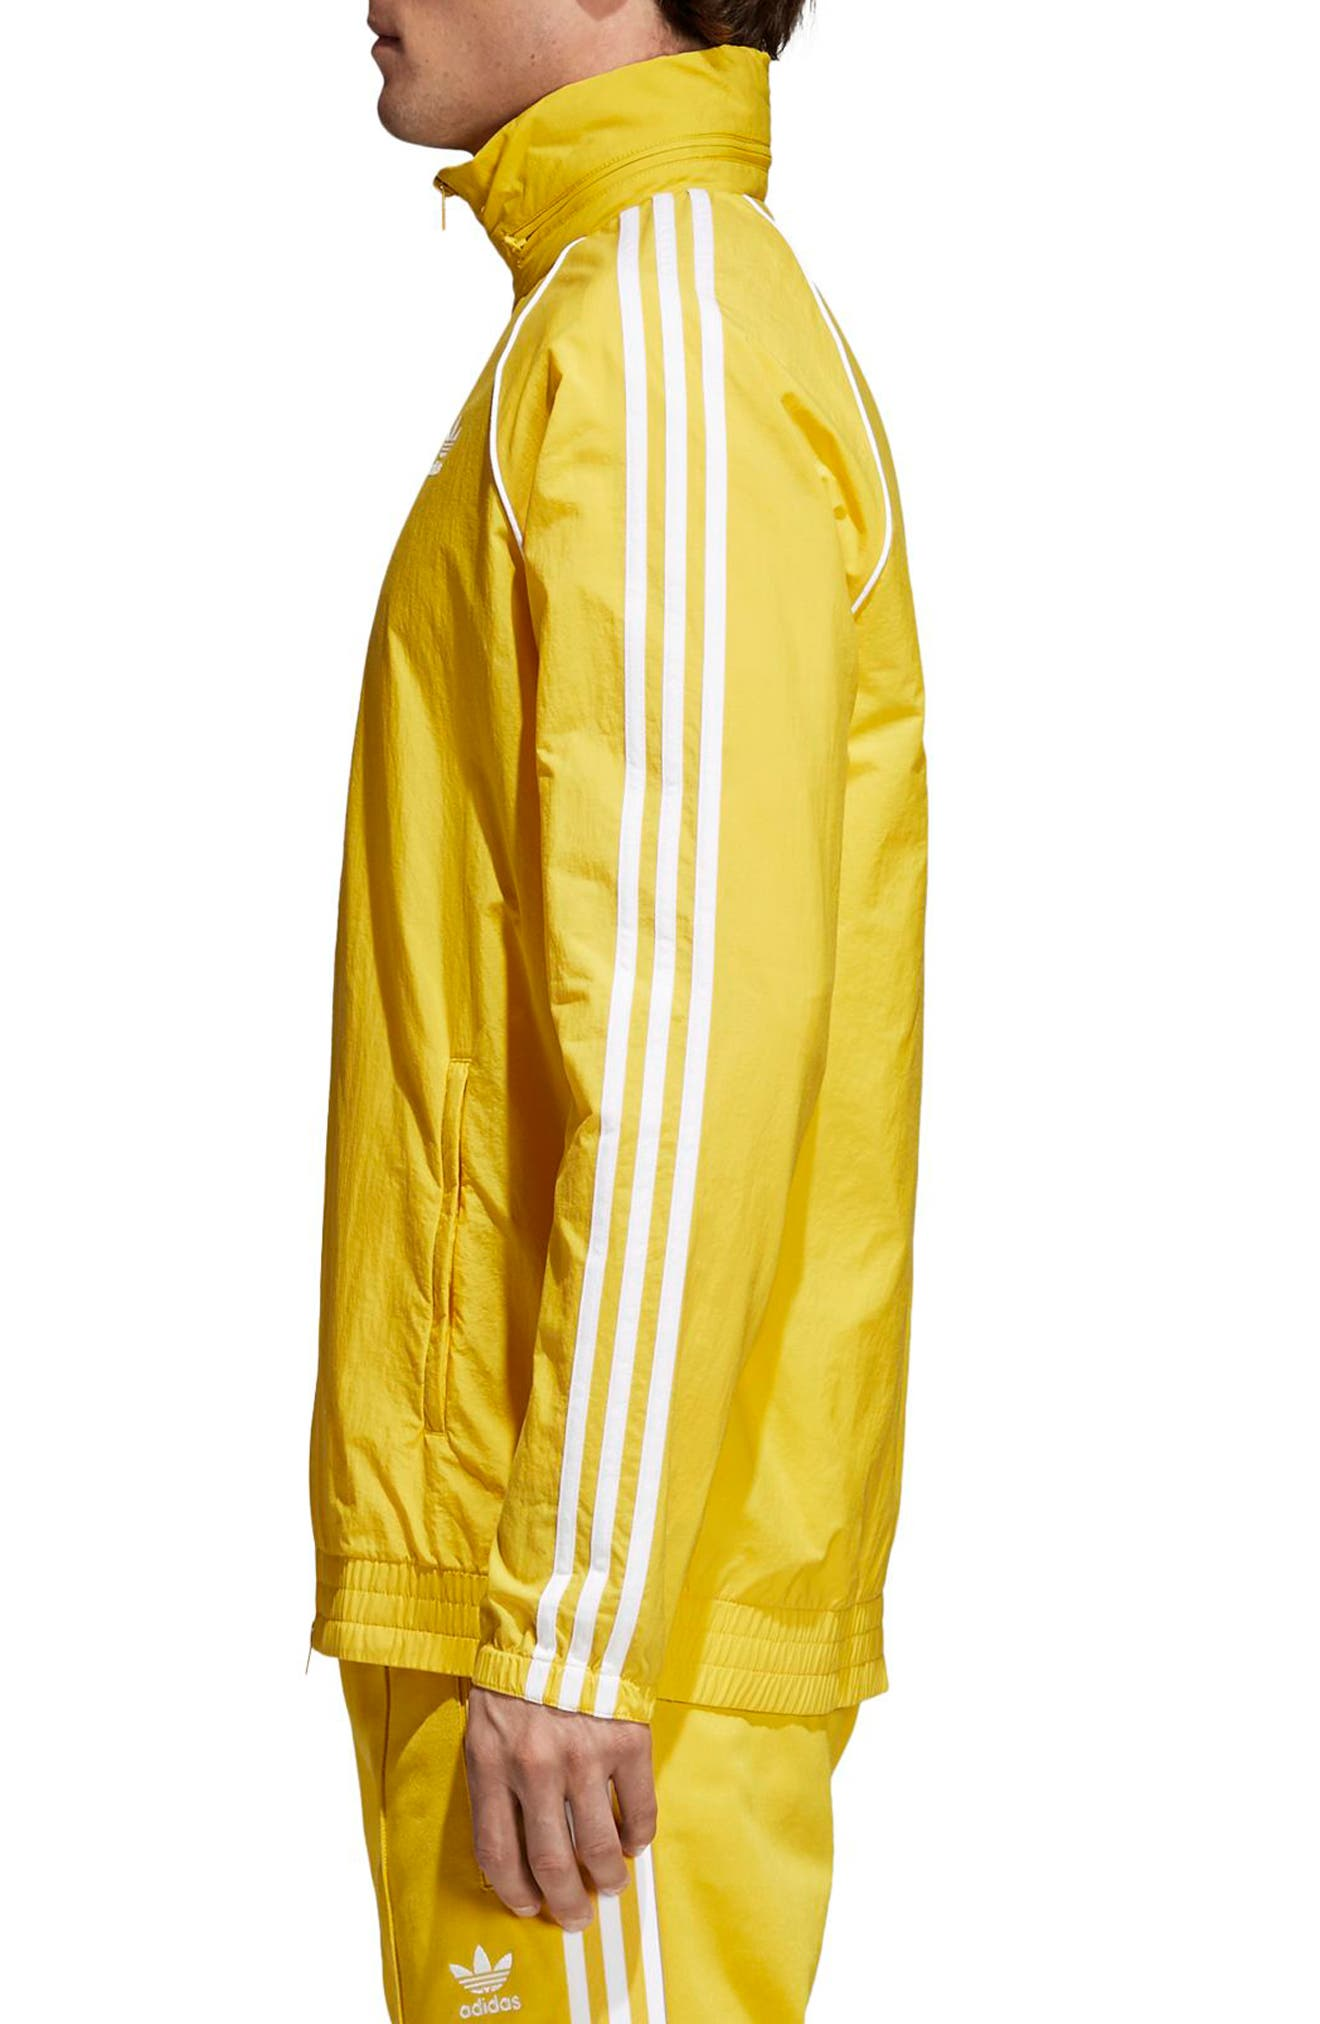 SST Windbreaker,                             Alternate thumbnail 3, color,                             Tribe Yellow